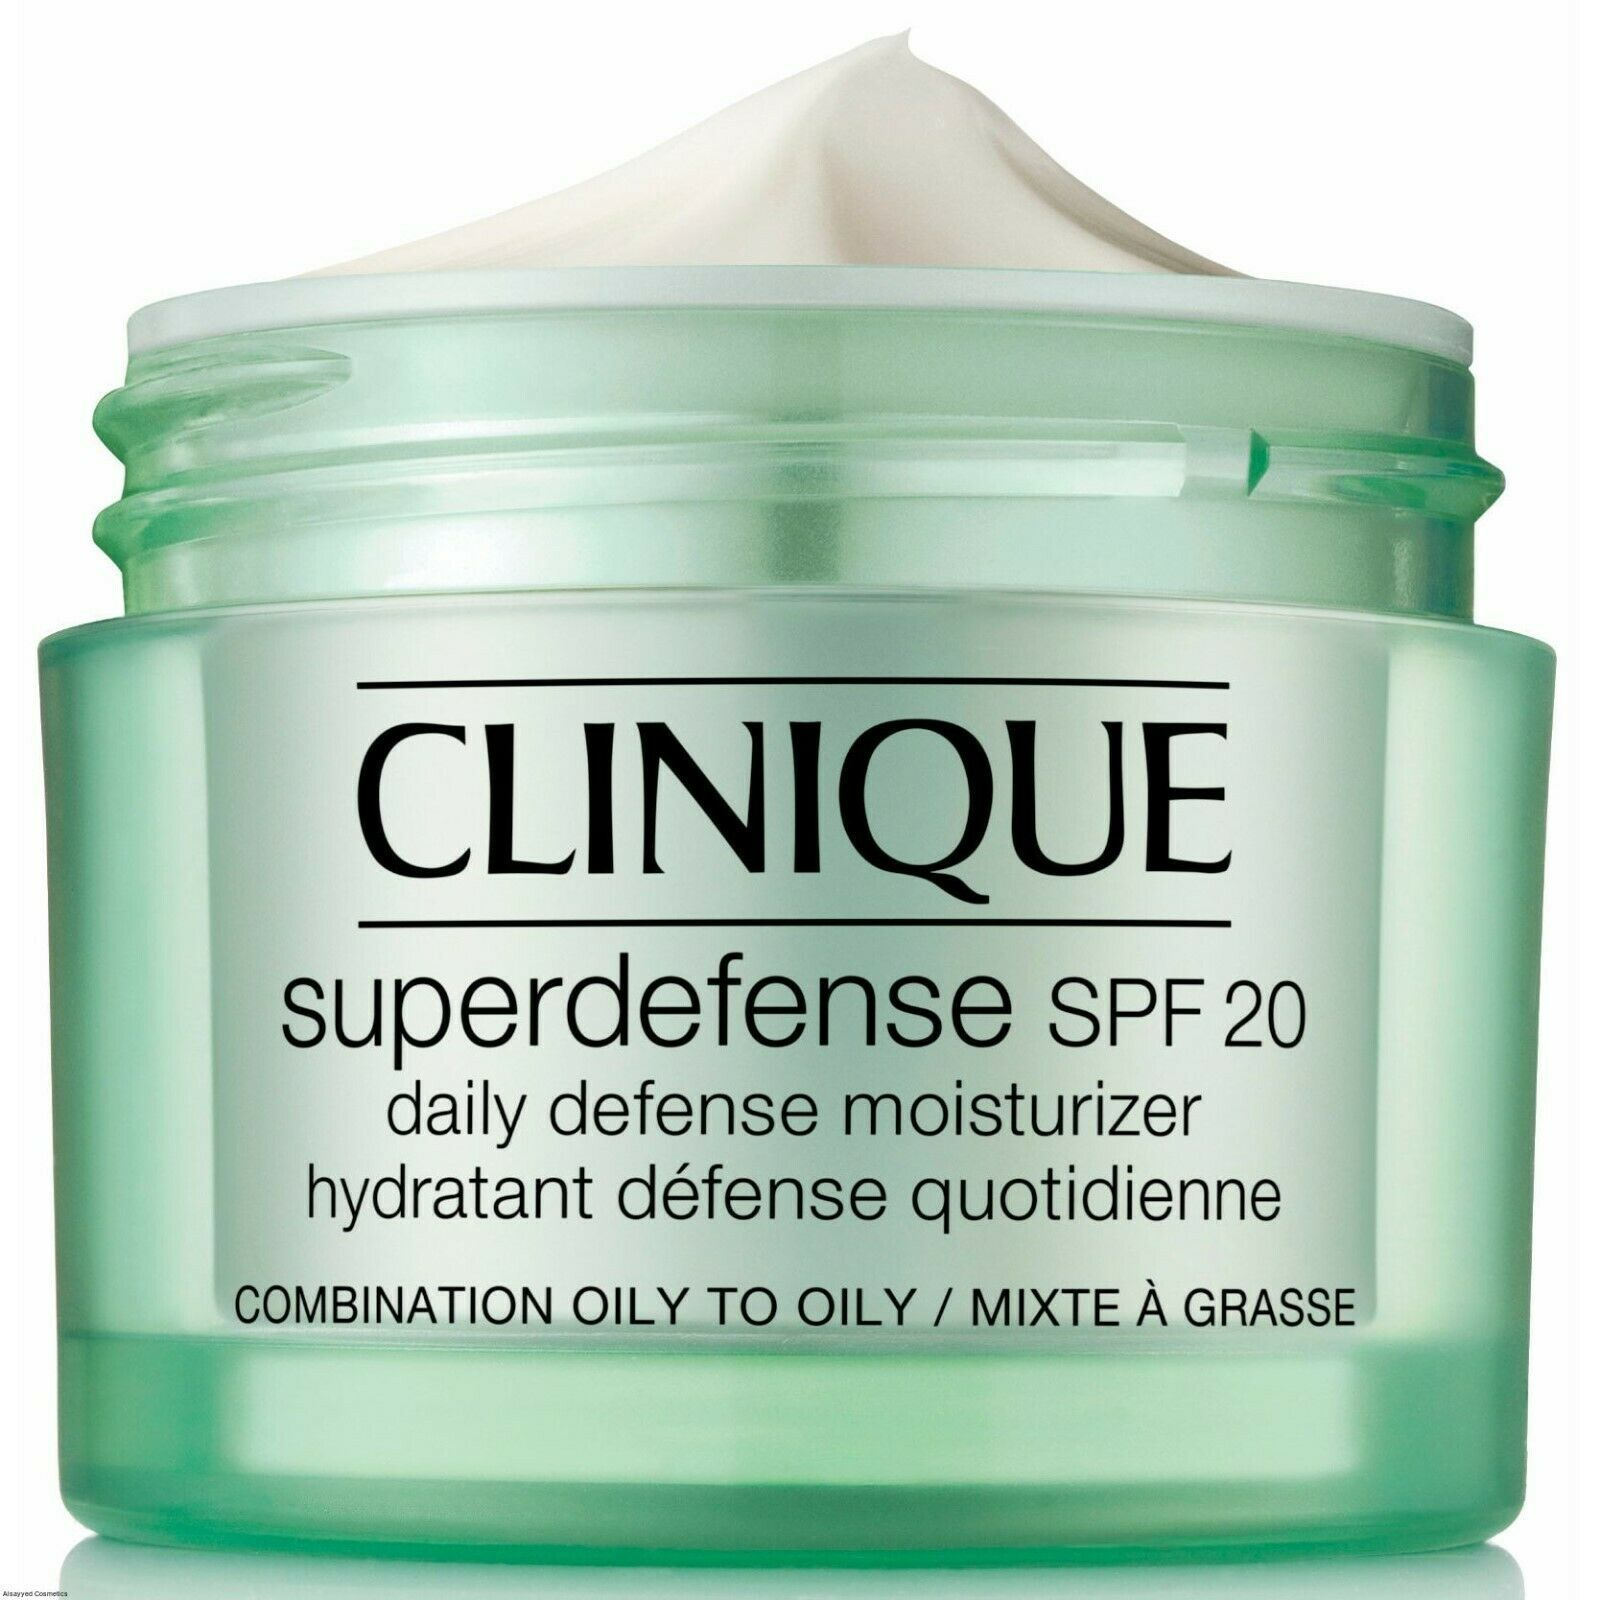 Clinique Superdefense Daily Defense Moisturizer SPF 20 Combination to Oily 50ml image 2